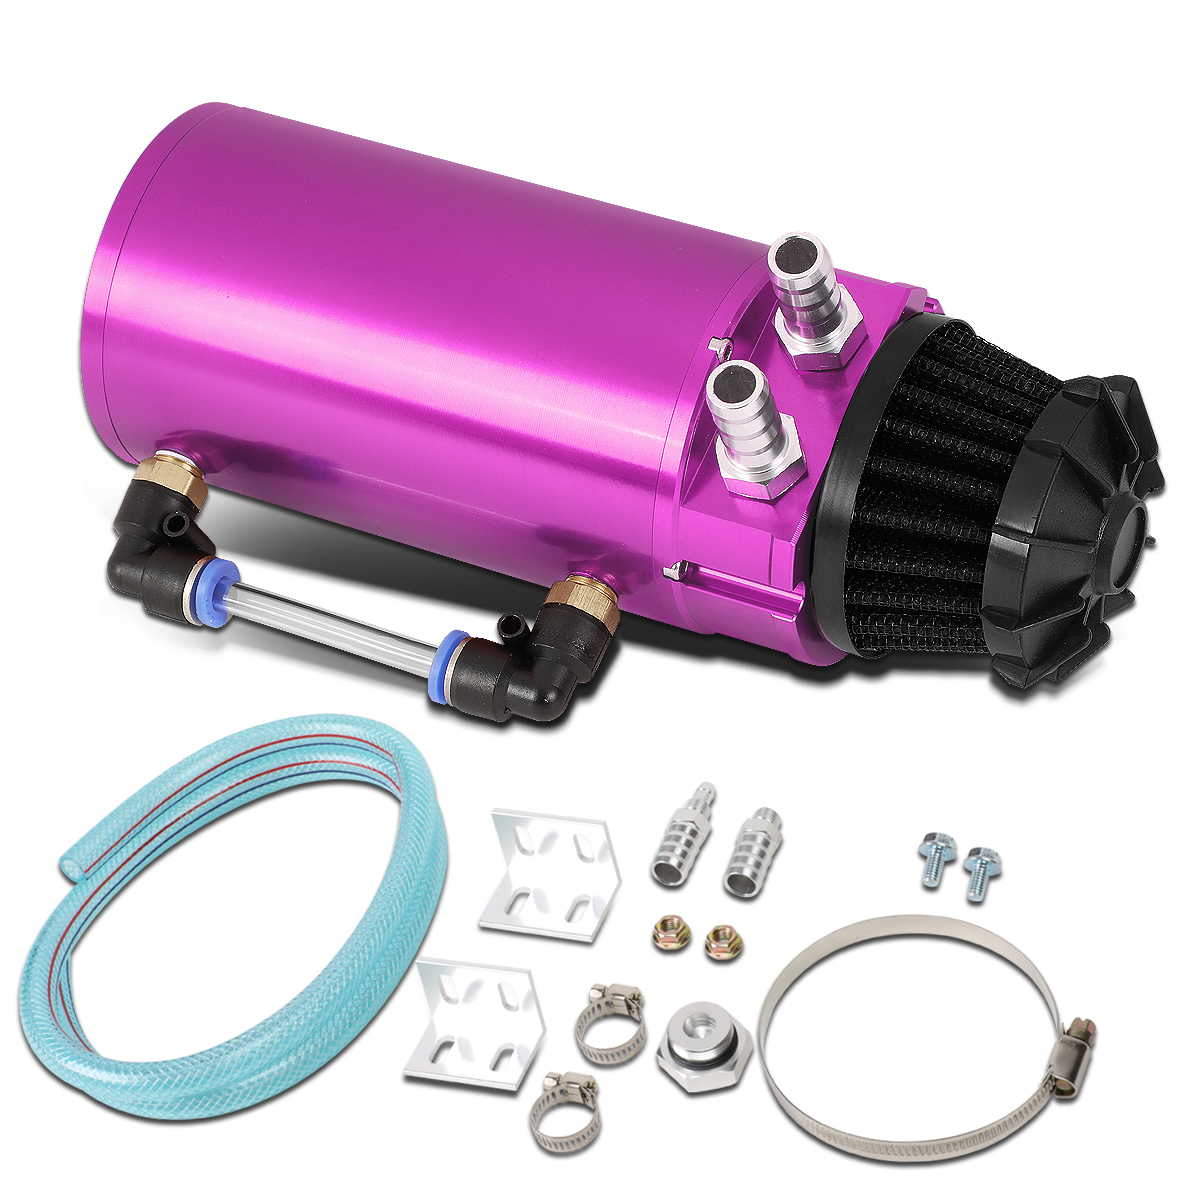 Universal Aluminum Oil Reservoir Catch Can Tank w/Breather Filter Baffled (Purple)